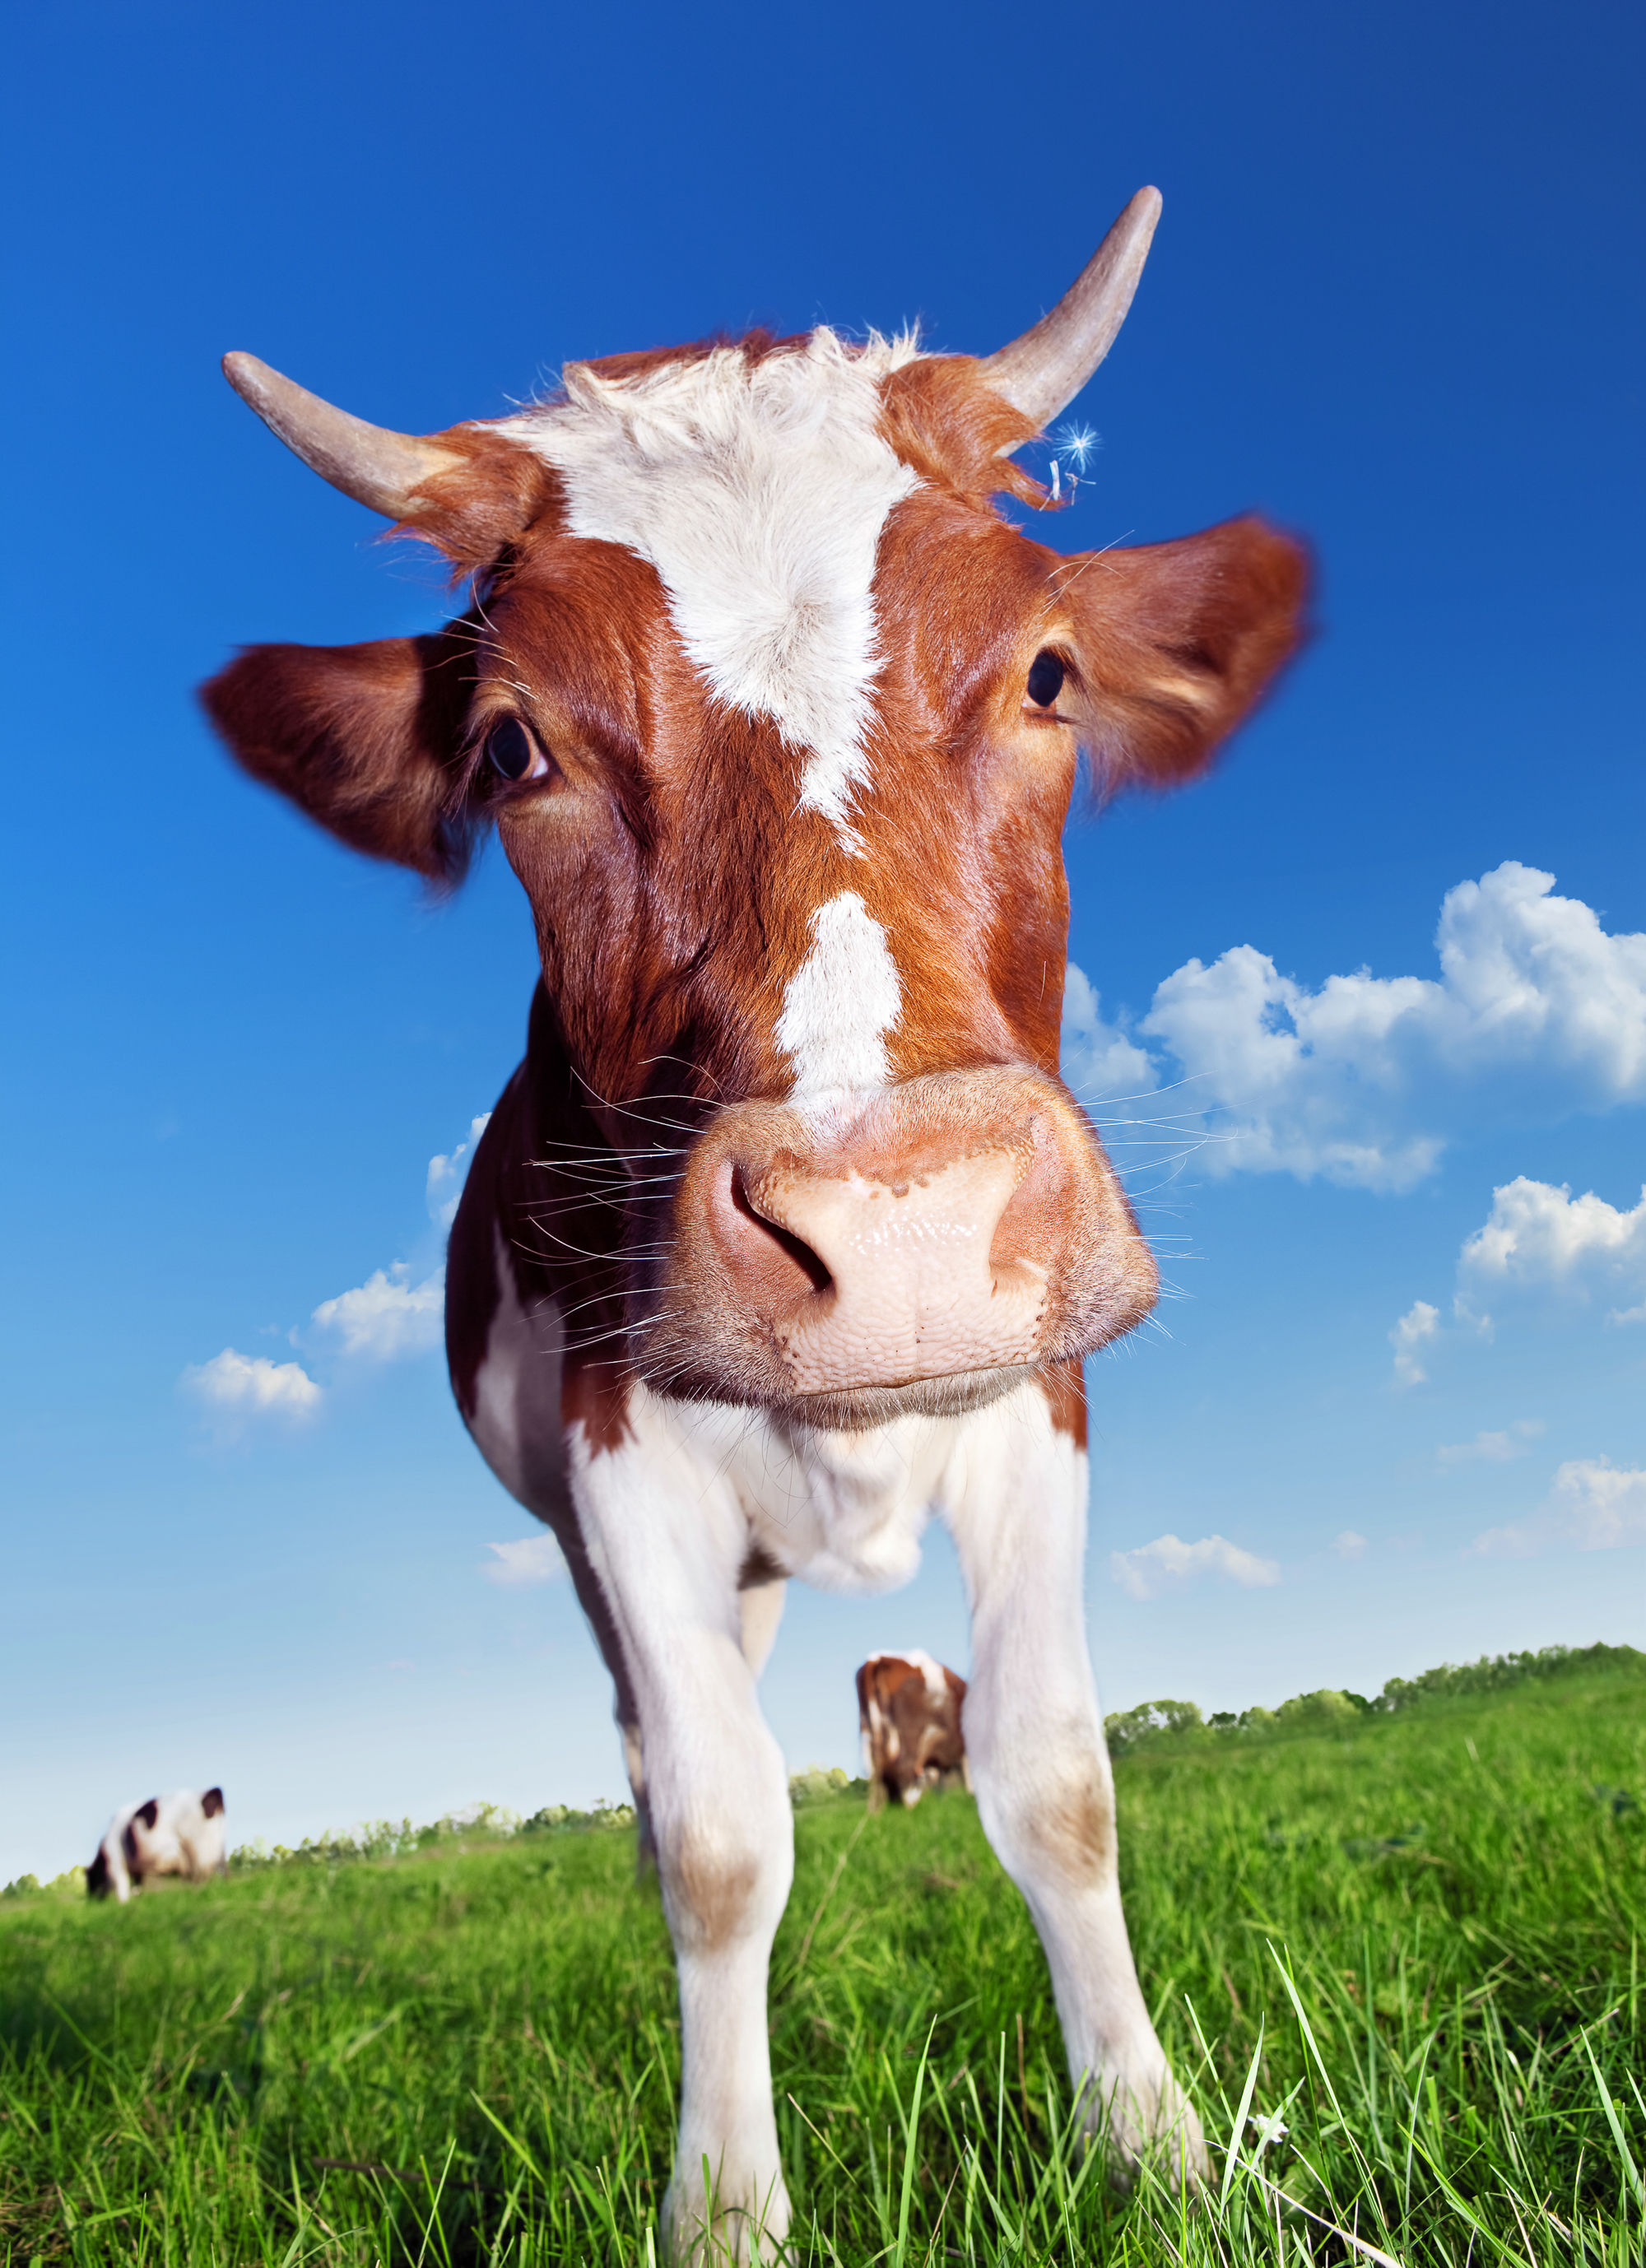 Cow with horns, Agriculture, One, Grass, Graze, HQ Photo